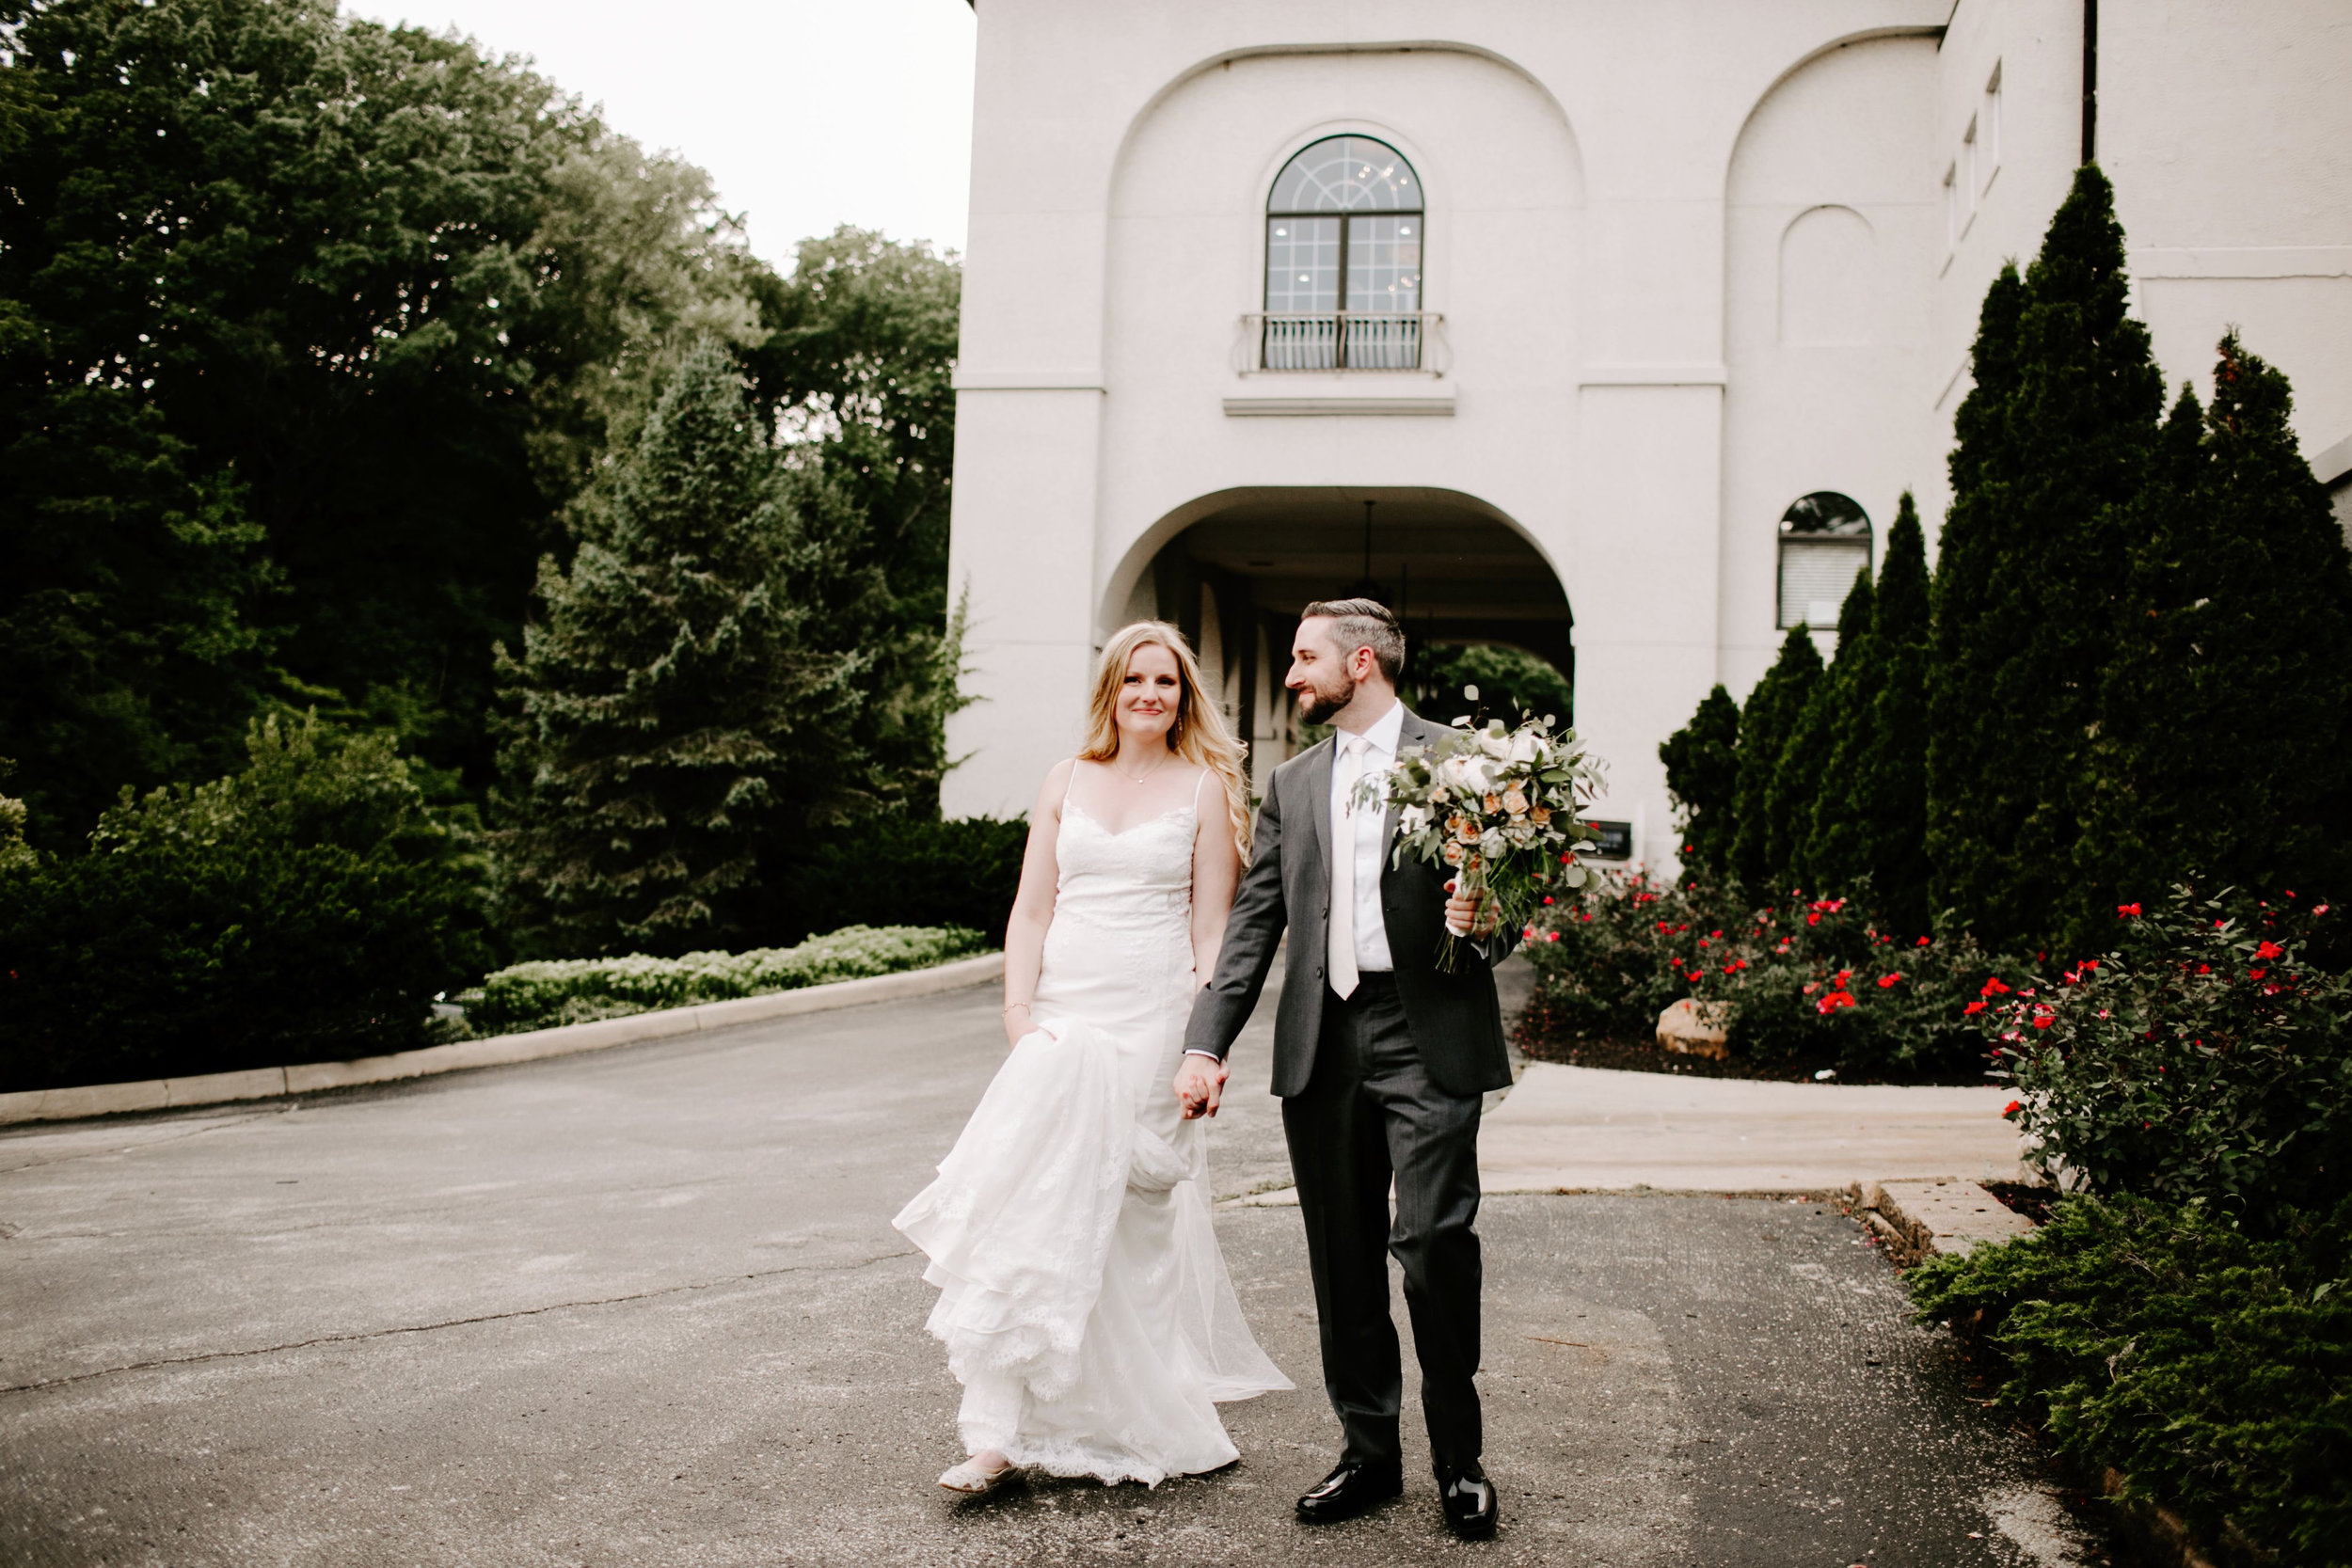 Shelby_and_Roger_Hillcrest_Country_Club_Wedding_Indianapolis_Indiana_Emily_Elyse_Wehner_Photography_LLC-624.jpg